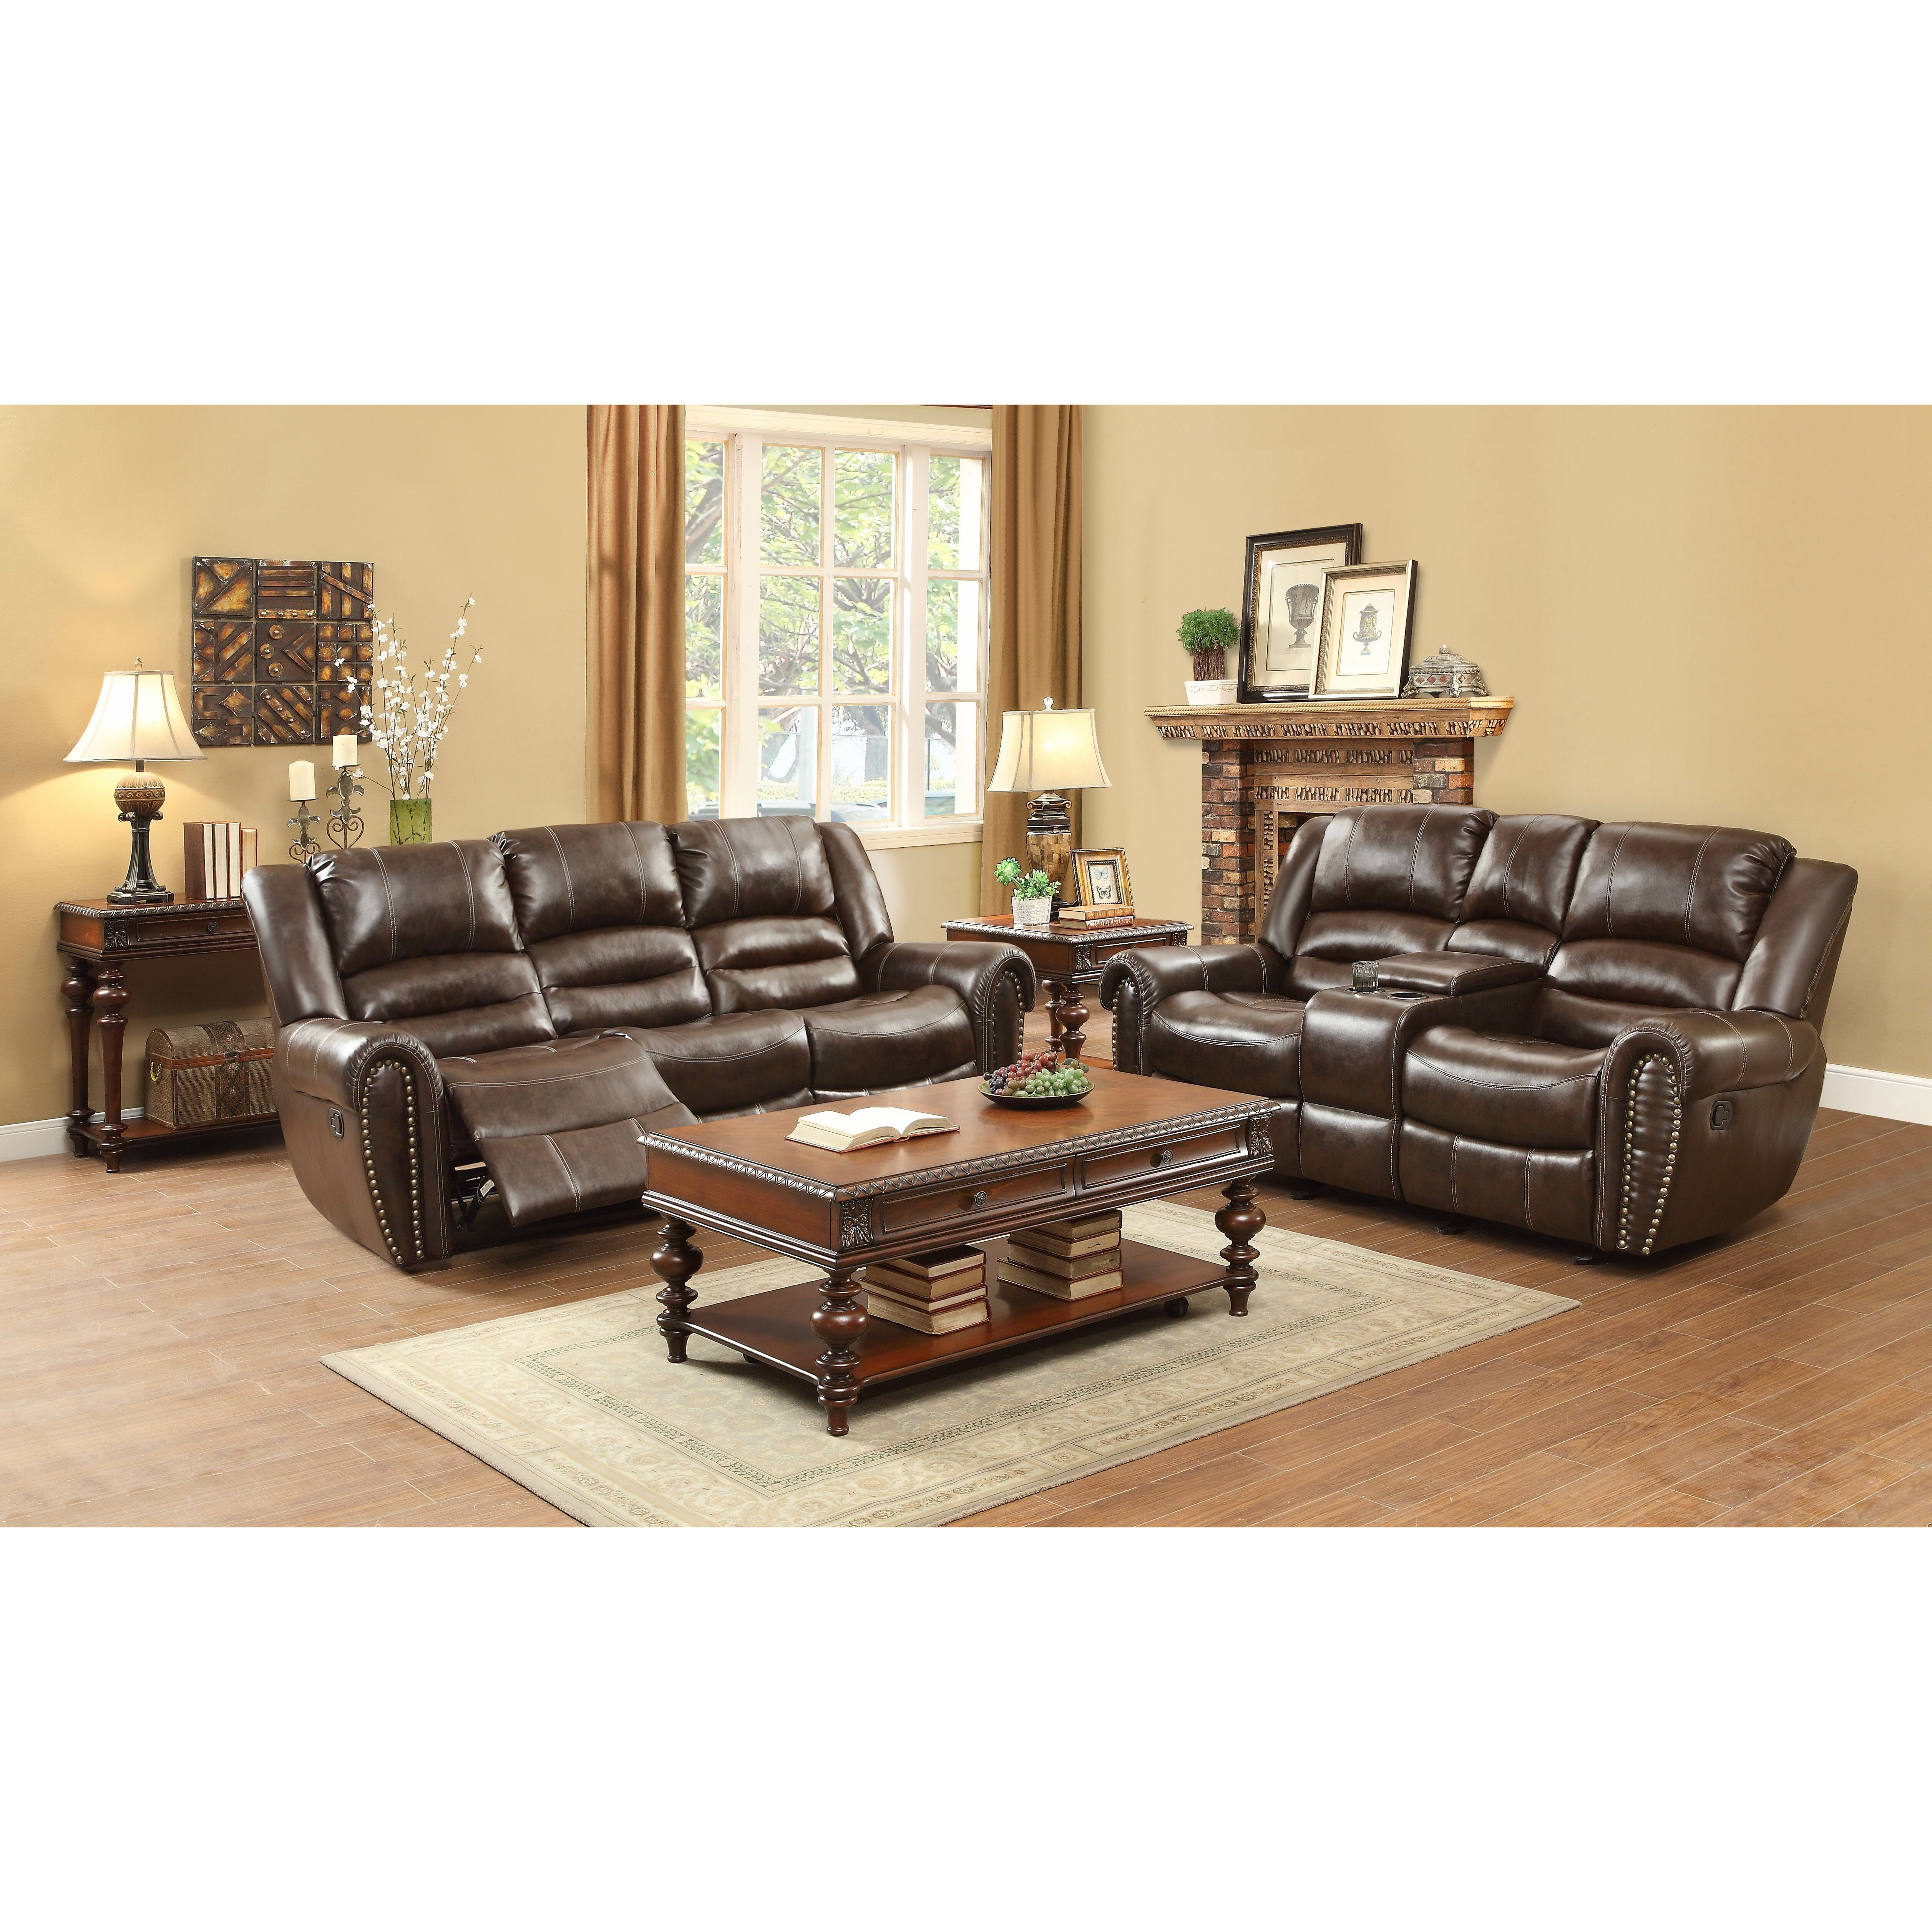 woodhaven hill center hill living room collection reviews wayfair. Black Bedroom Furniture Sets. Home Design Ideas